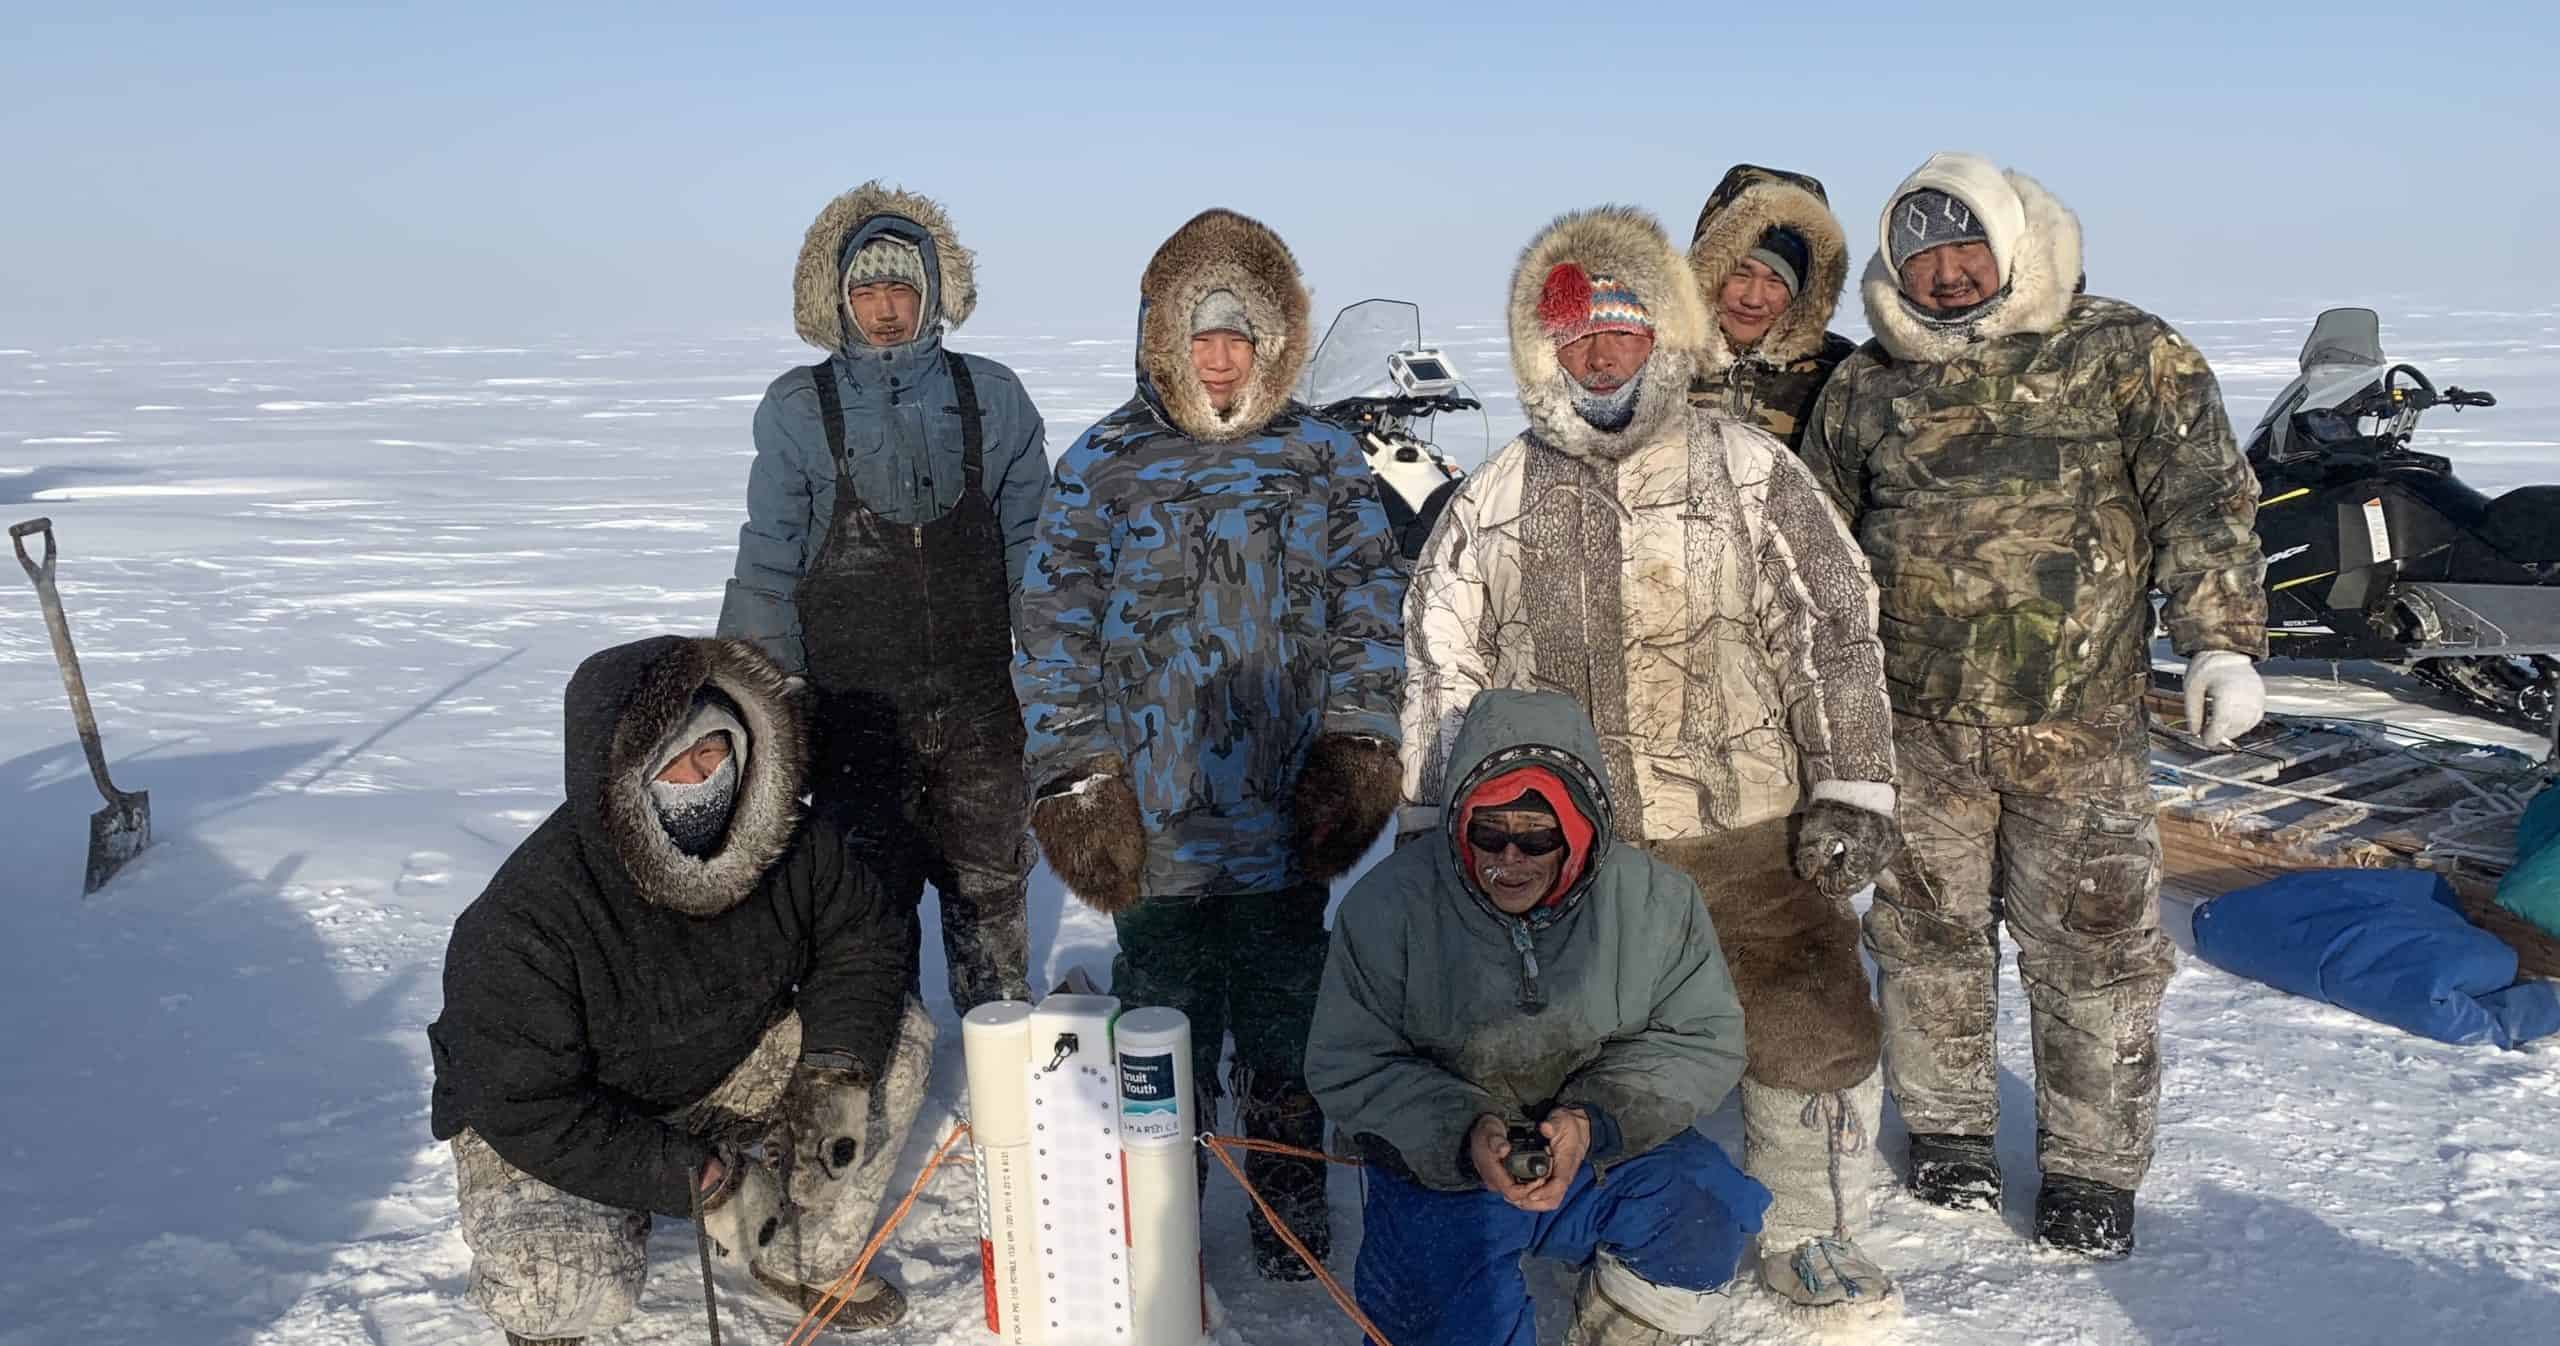 Image description: Seven community members and SmartICE operators in Igloolik, Nunavut are deploying a SmartBUOY device in the sea ice in March 2020. Data from the SmartBUOY is transmitted daily via satellite and made available to the community on SIKU.org.